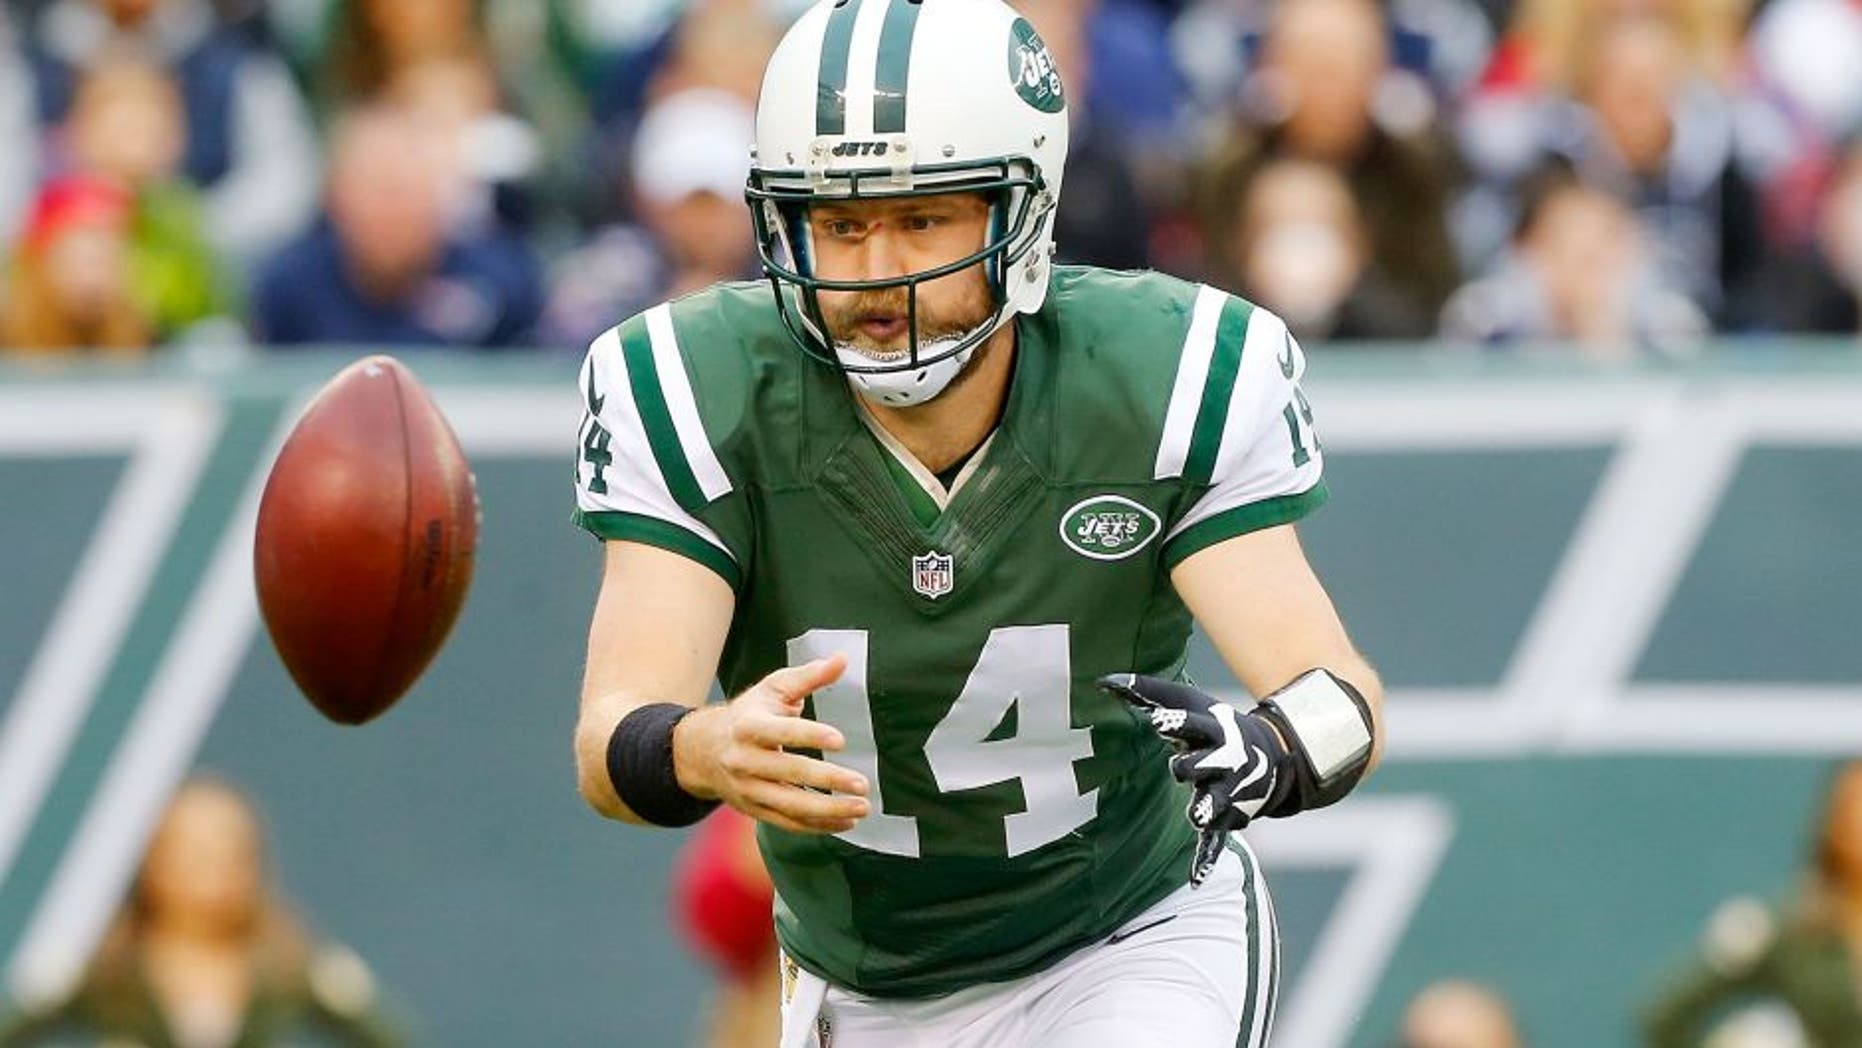 EAST RUTHERFORD, NJ - DECEMBER 27: (NEW YORK DAILIES OUT) Ryan Fitzpatrick #14 of the New York Jets in action against the New England Patriots on December 27, 2015 at MetLife Stadium in East Rutherford, New Jersey. The Jets defeated the Patriots 26-20 in overtime. (Photo by Jim McIsaac/Getty Images)